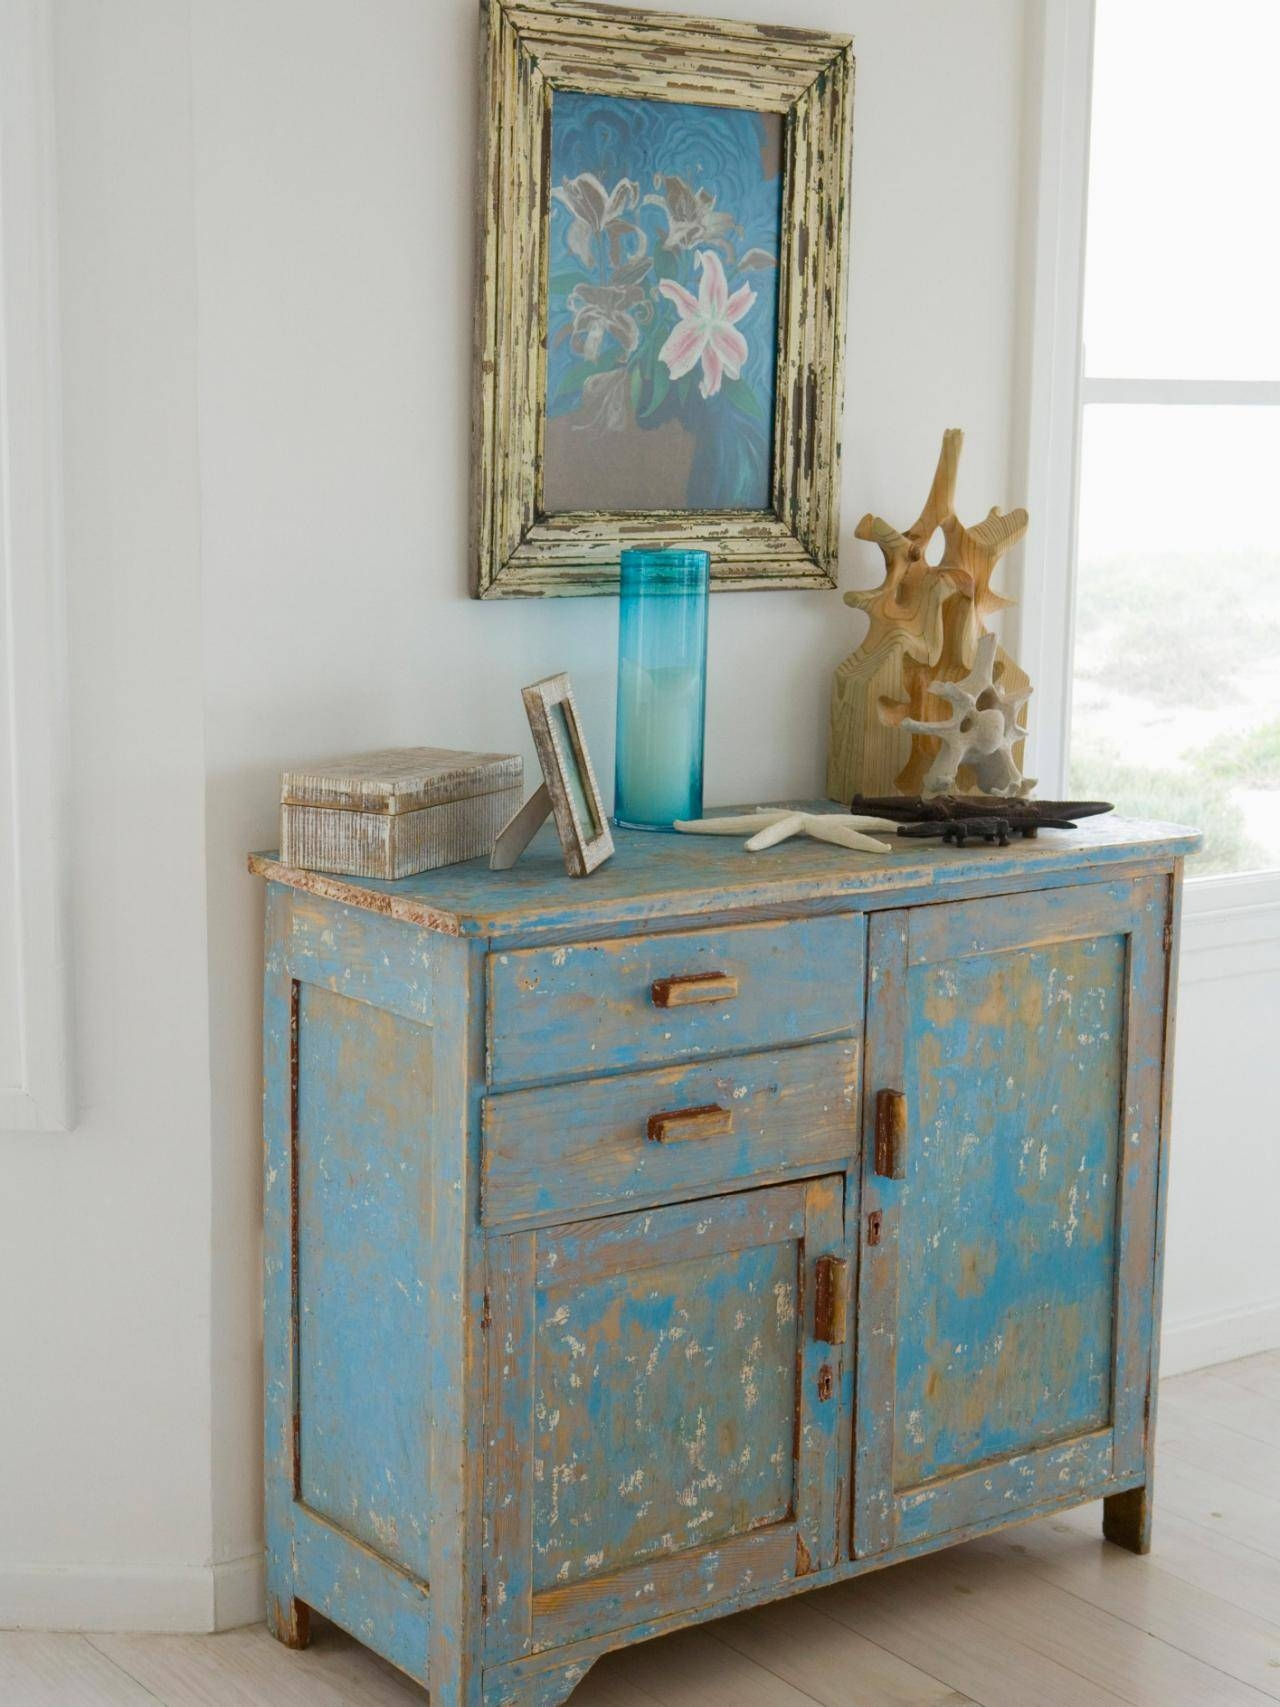 How To Distress Furniture | Hgtv with Distressed Wood Sideboards (Image 17 of 30)